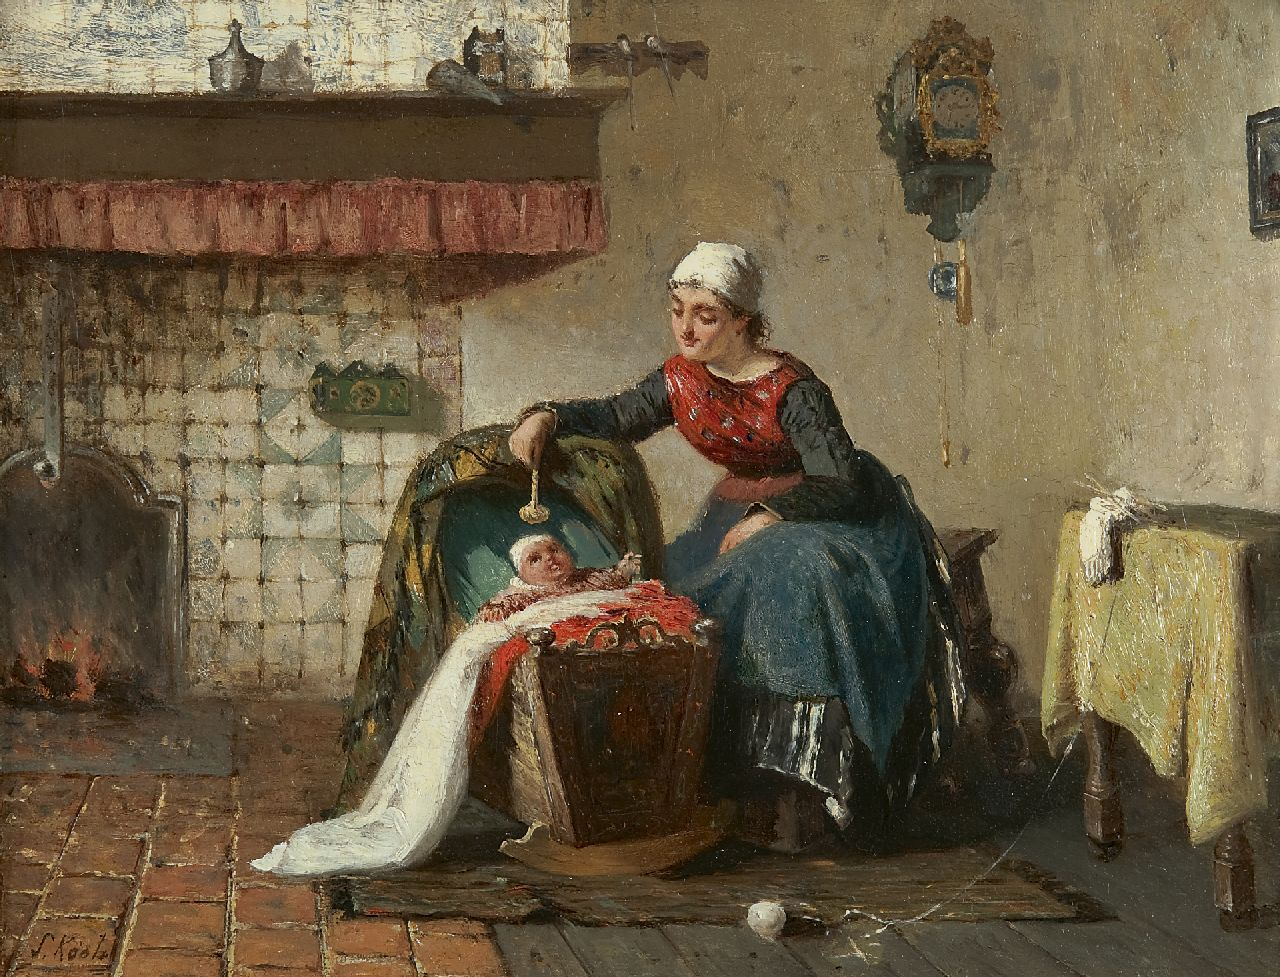 Sipke 'Cornelis' Kool | Mother and child near a fireplace, oil on panel, 26.6 x 35.0 cm, signed l.l. and dated 1881